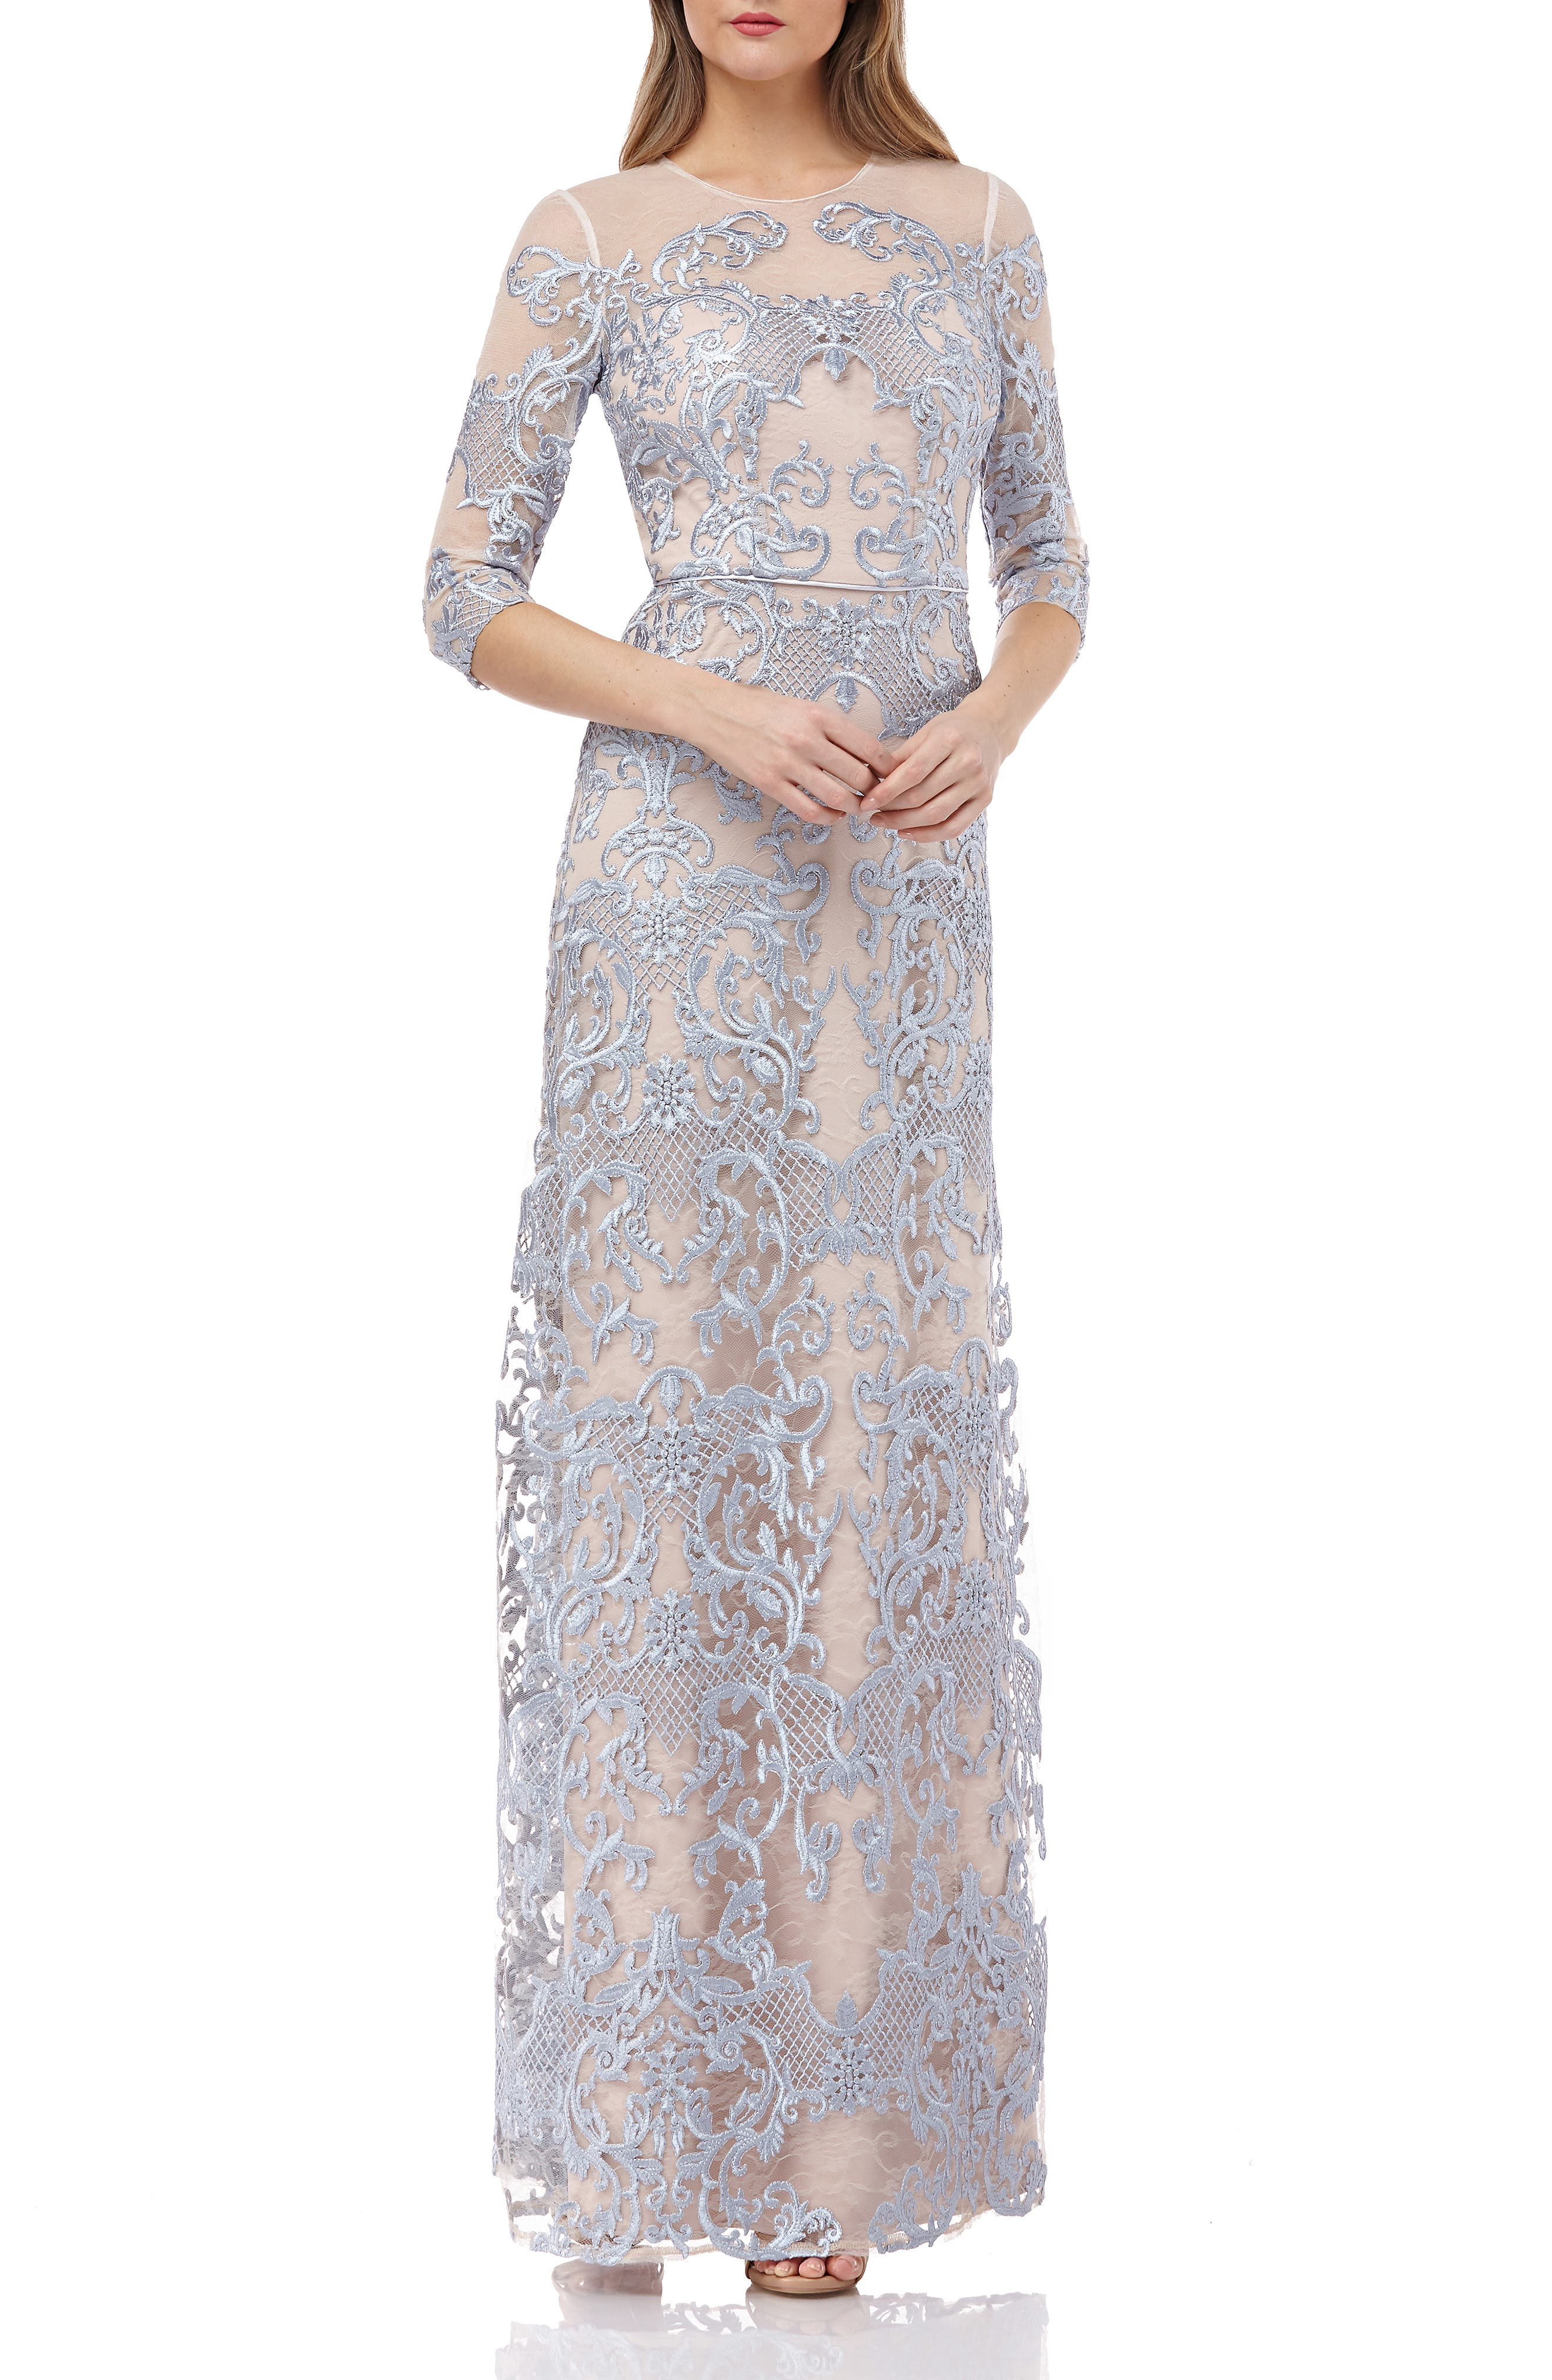 Js Collections Embroidered Lace Maxi Dress, 8 (similar to 16W) - Blue